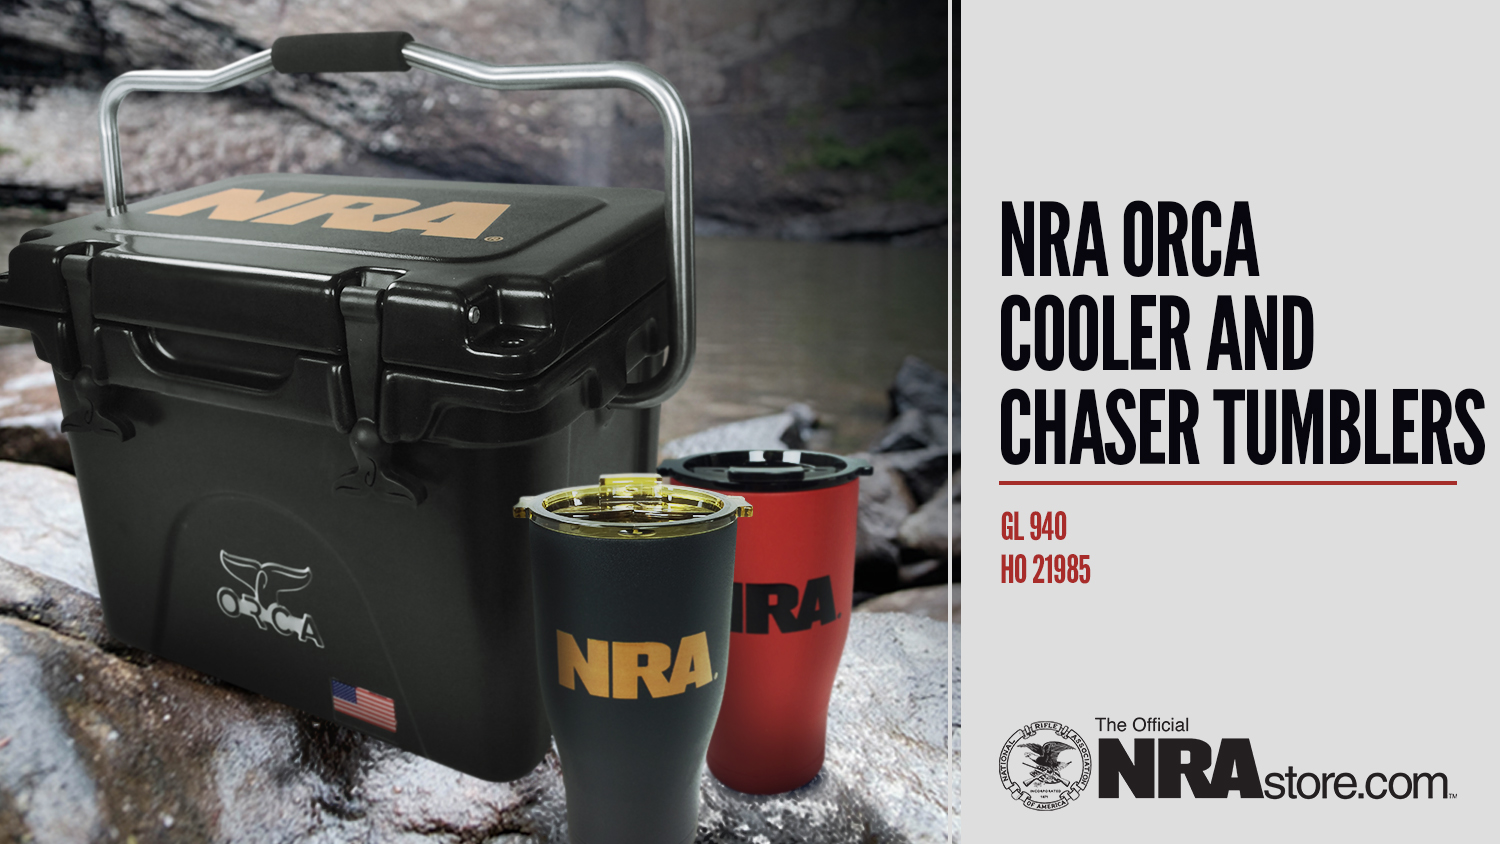 NRAstore Product Highlight: NRA Orca Cooler and Chaser Tumblers